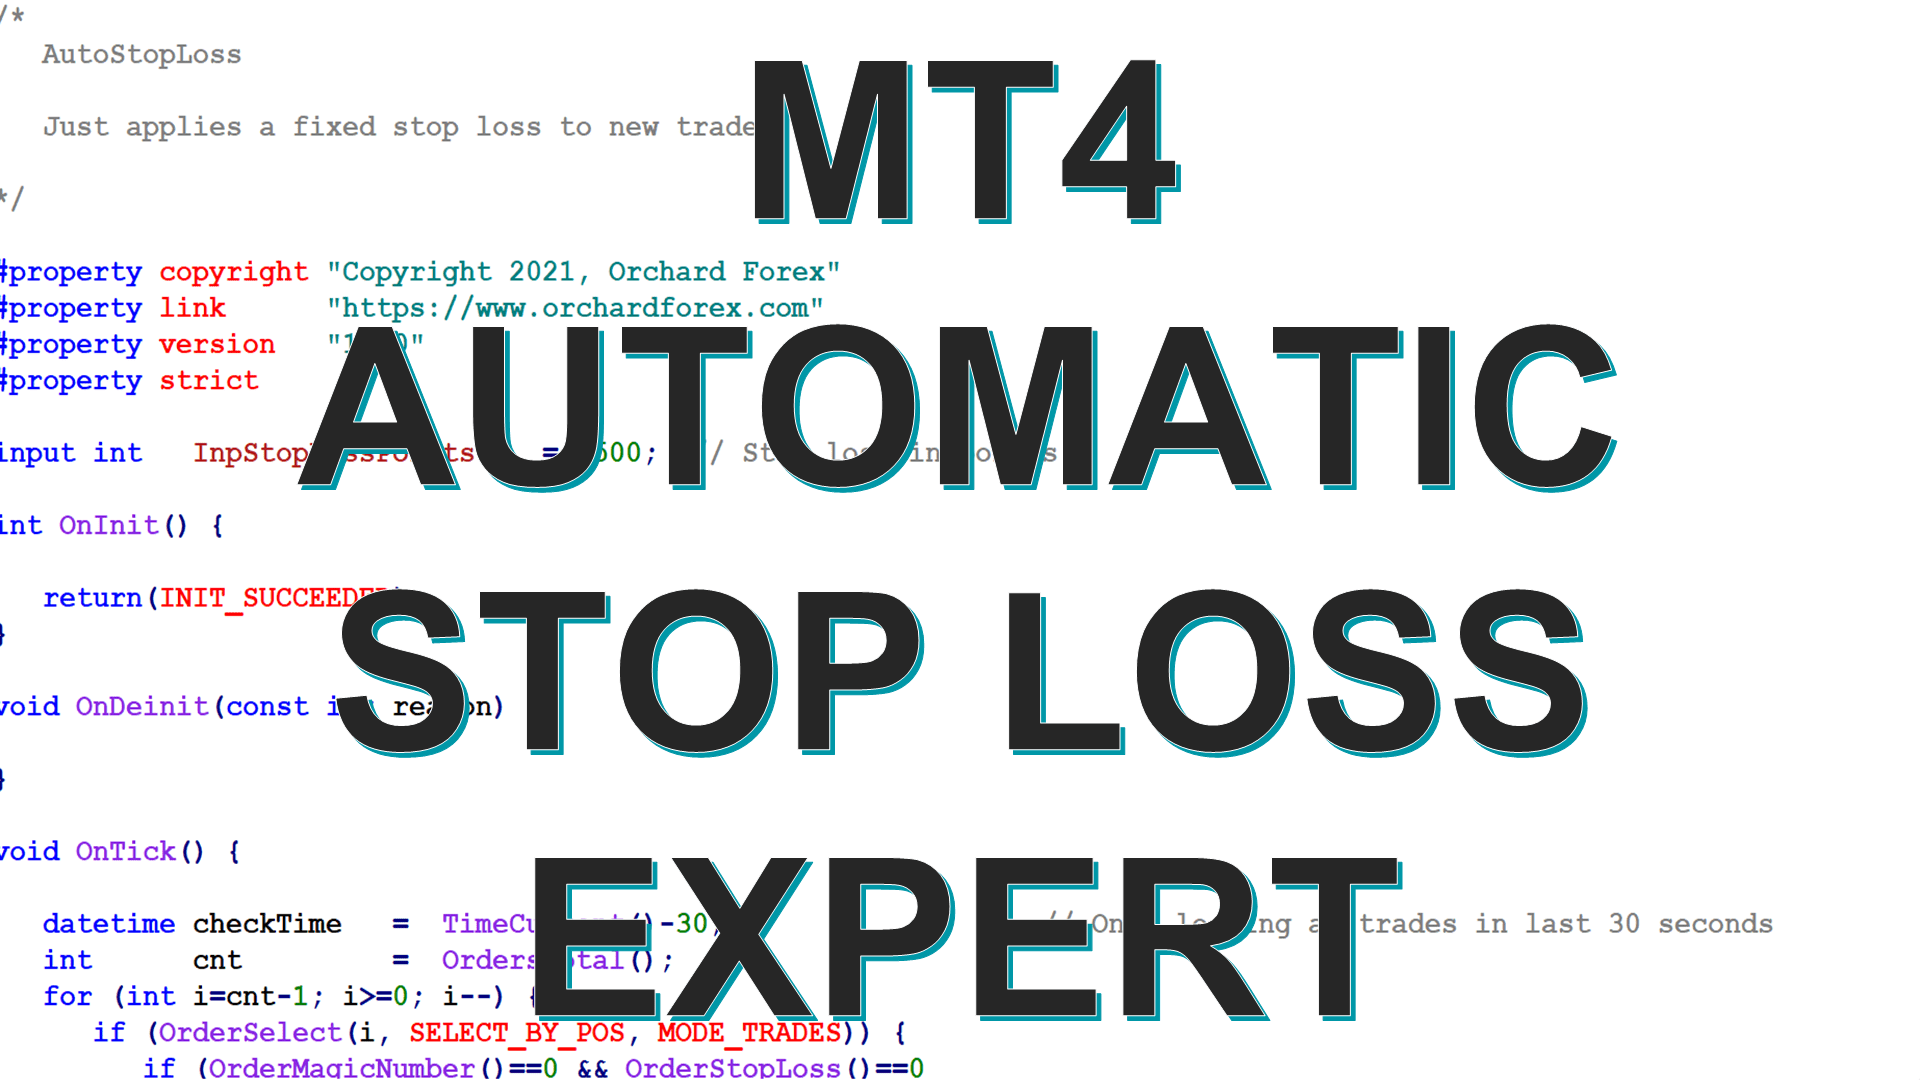 MT4 Expert to apply an Automatic Stop Loss